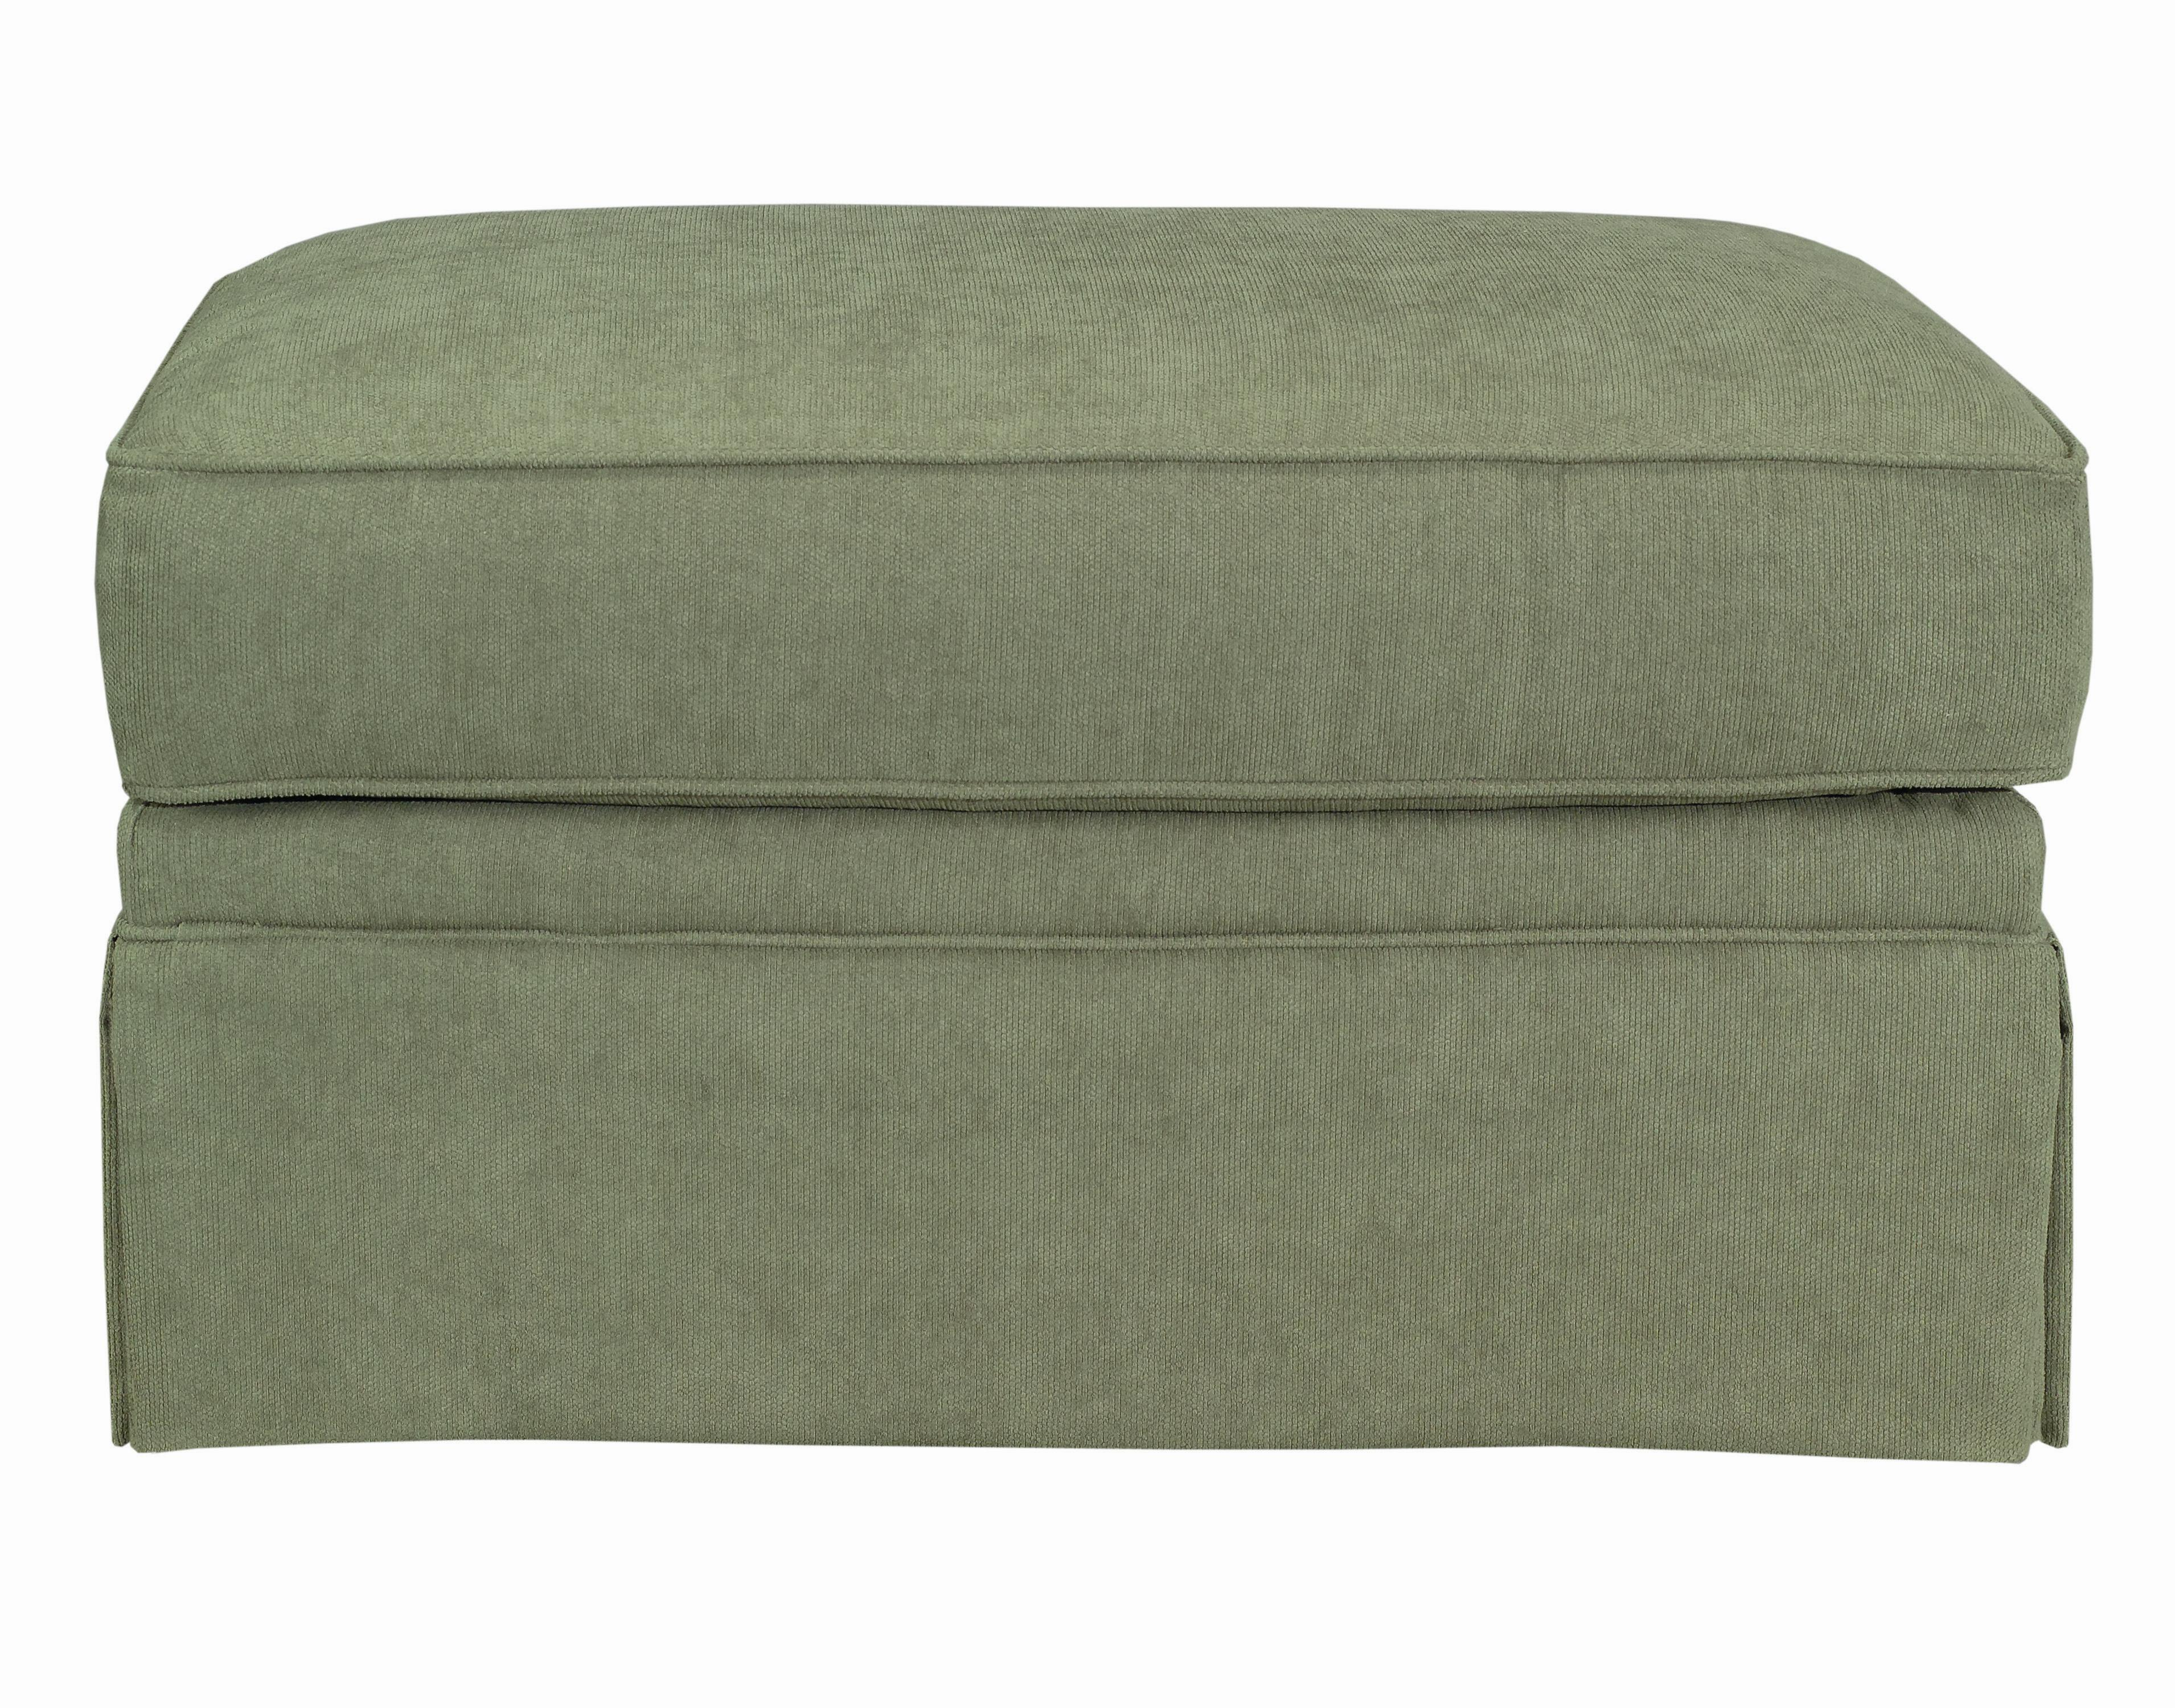 Charlotte Ottoman by Kincaid Furniture at Home Collections Furniture